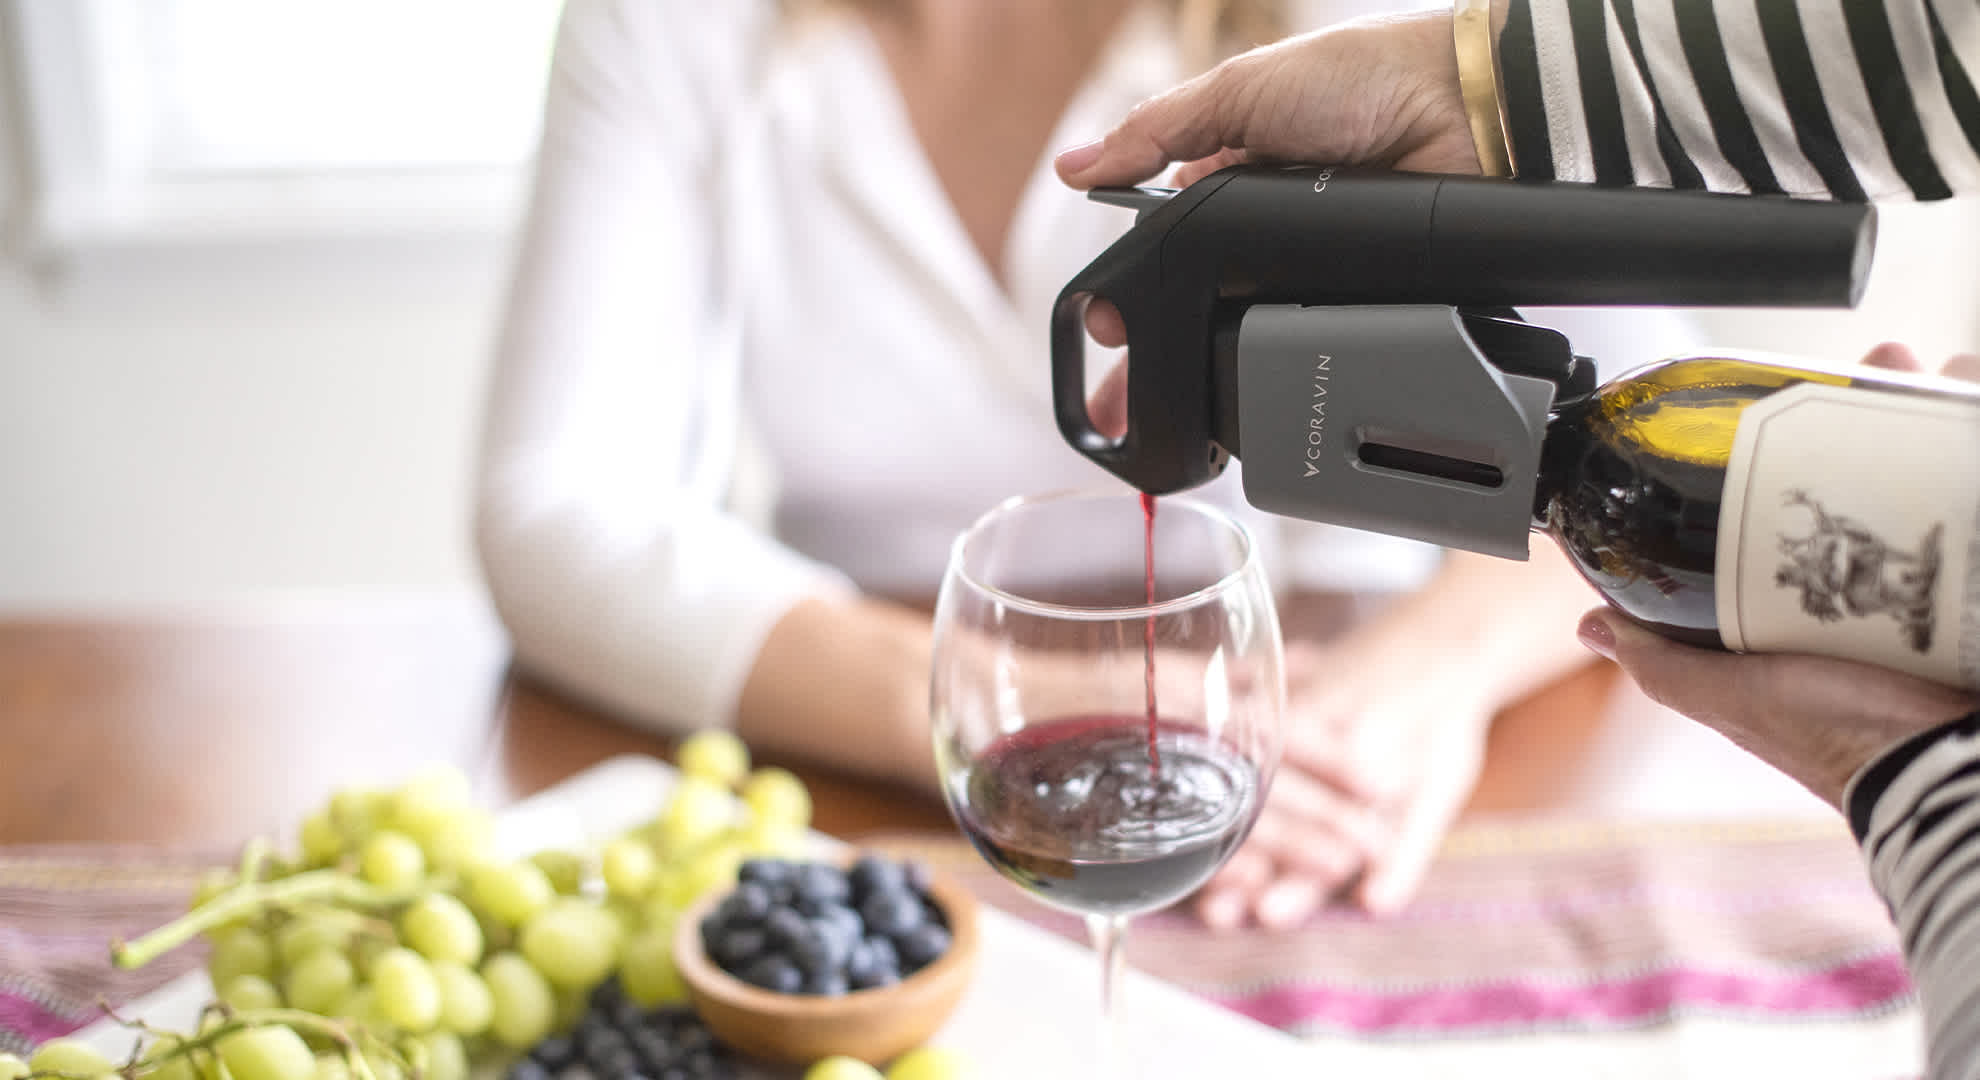 A woman pouring wine into a glass using the Coravin Model Three System with grapes, blueberries, and another woman in the background.